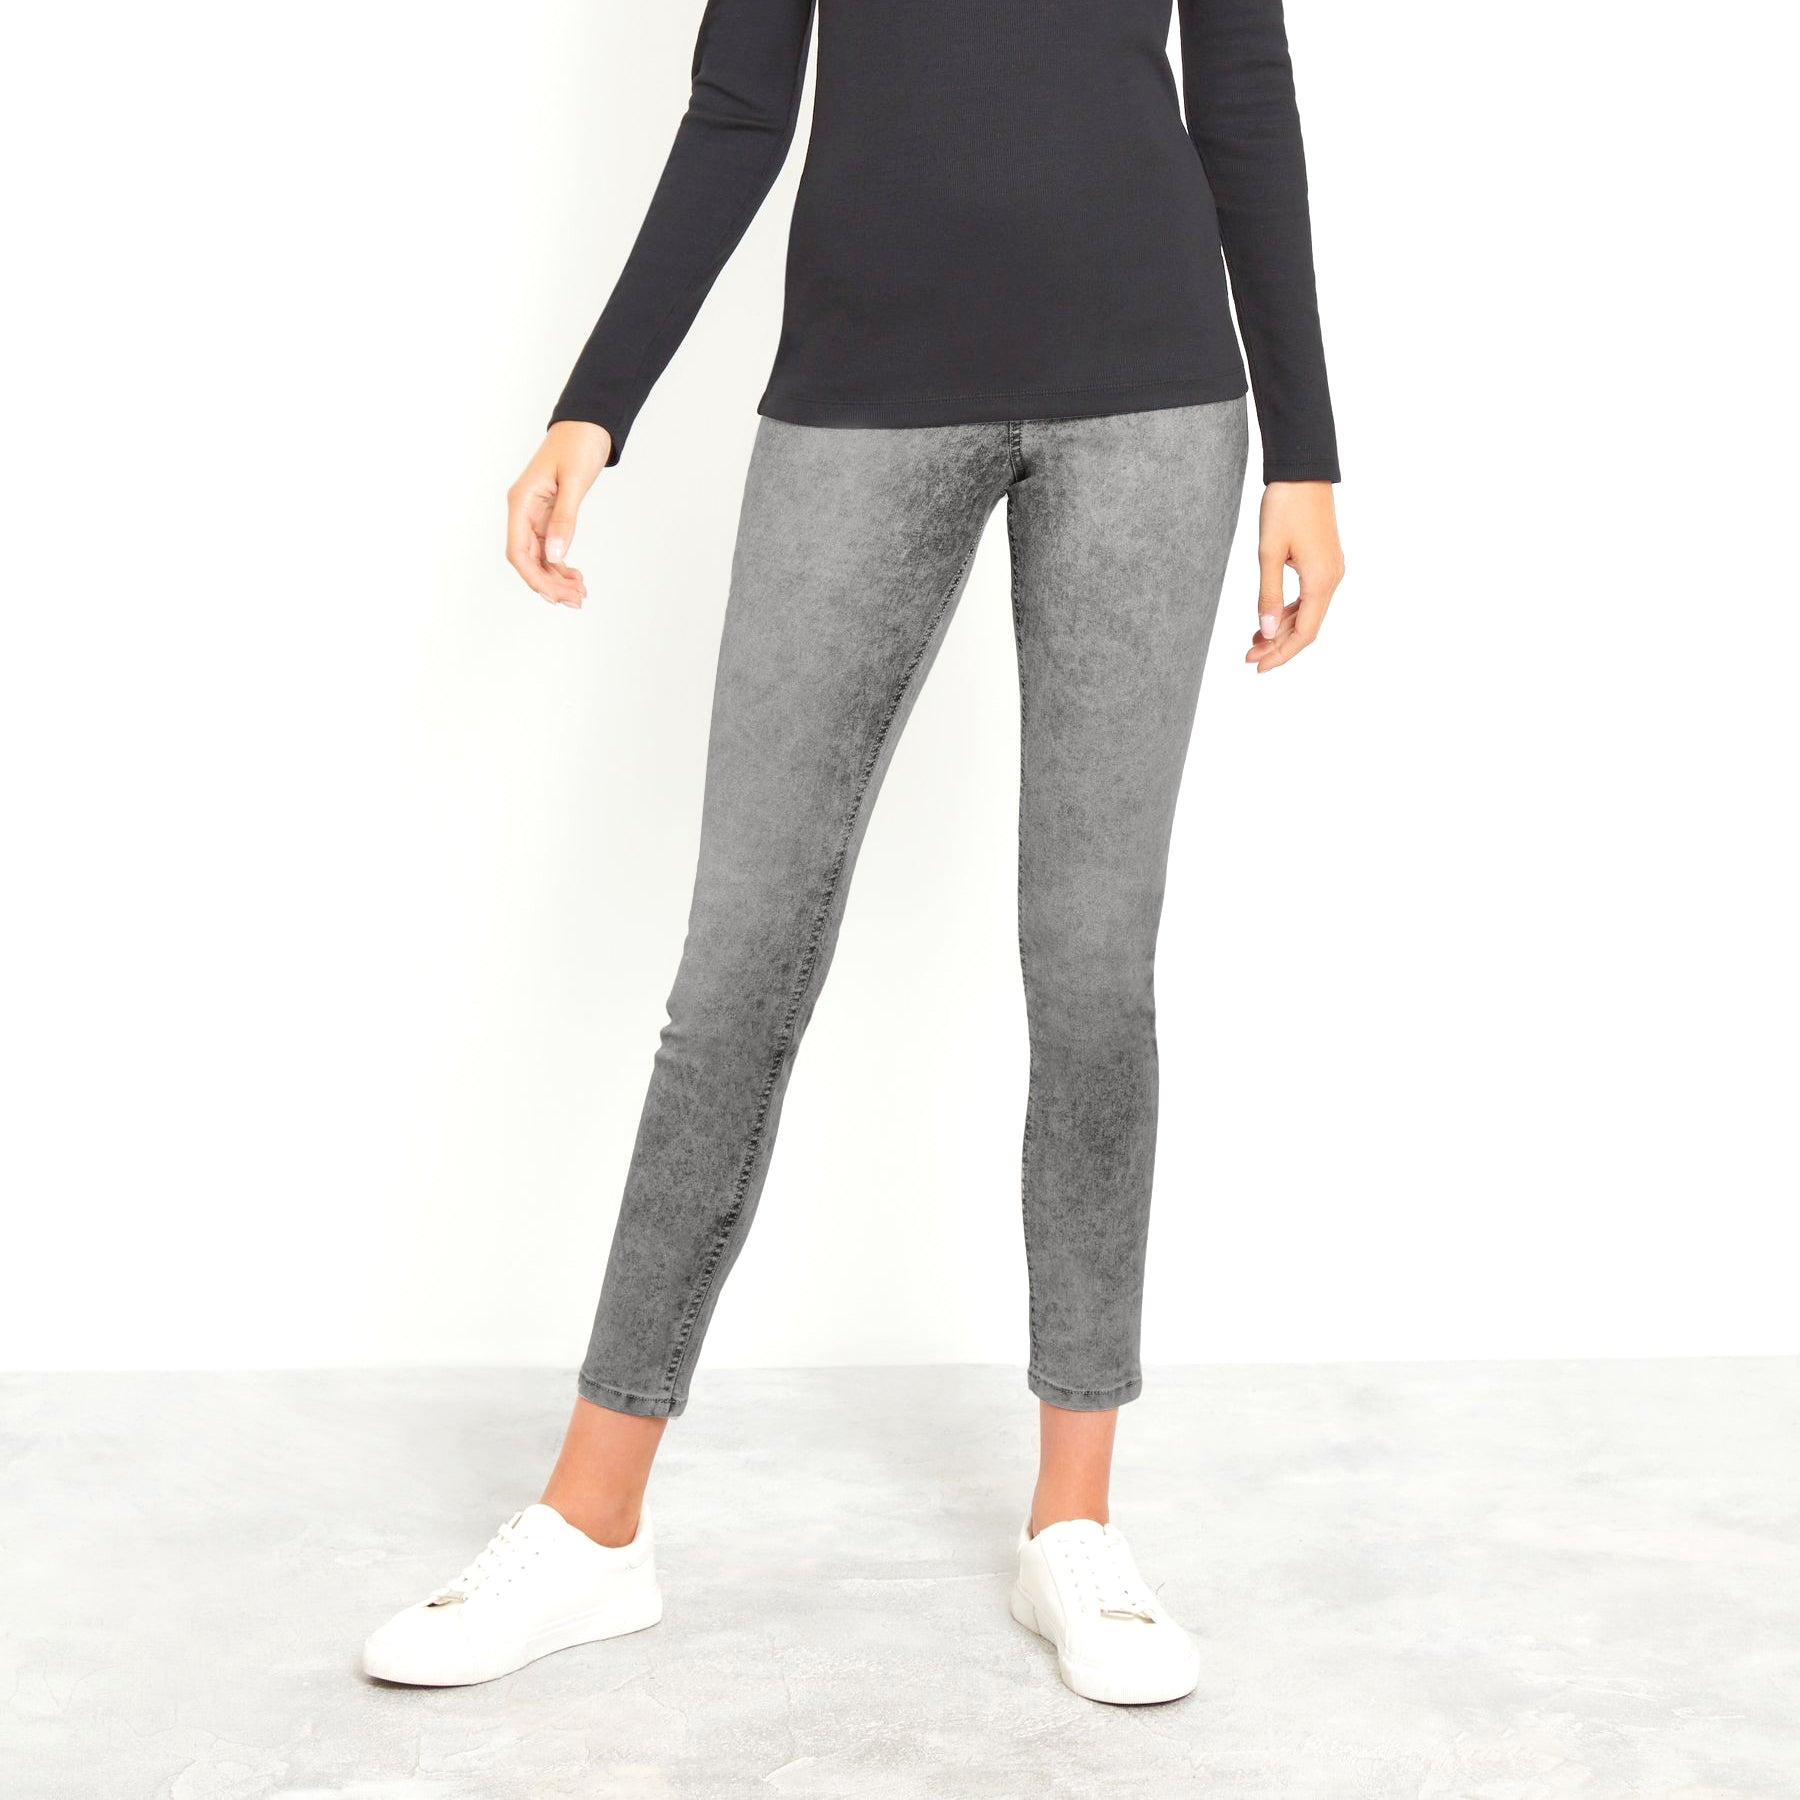 Boohoo Slim Fit Stretch Jeans For Ladies-Grey Melange-NA10744